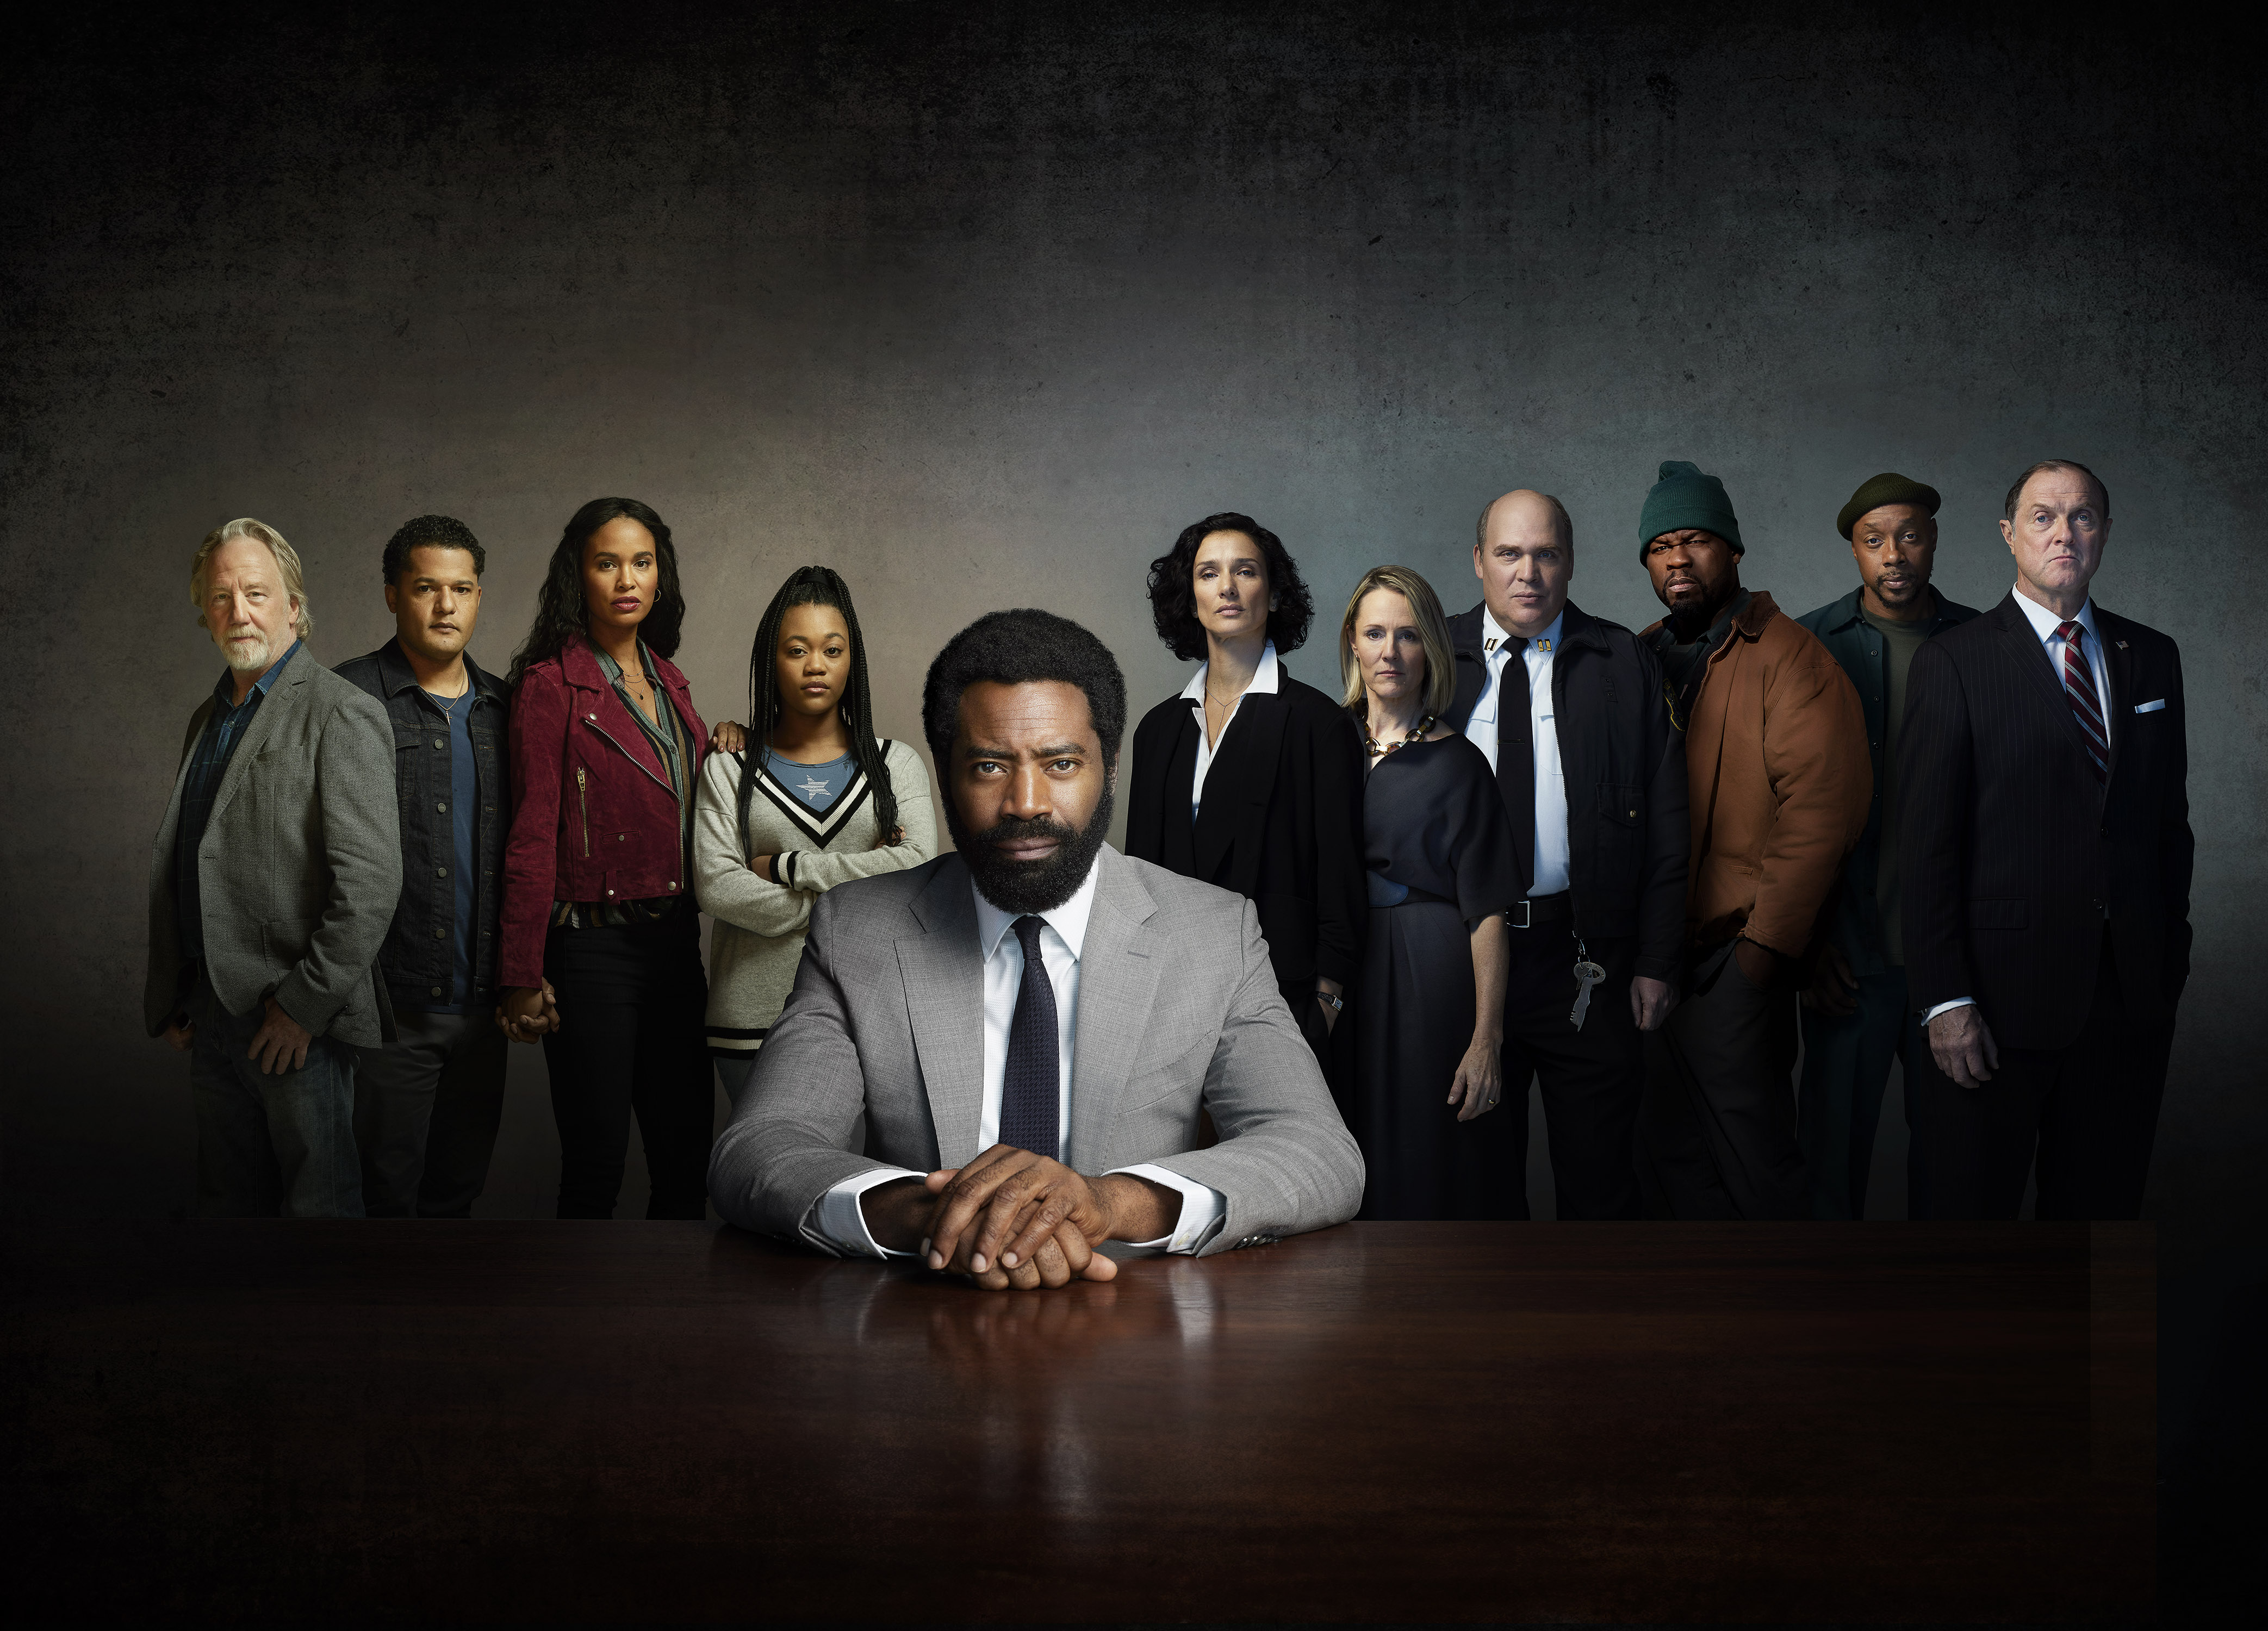 TV Shows Based on True Stories